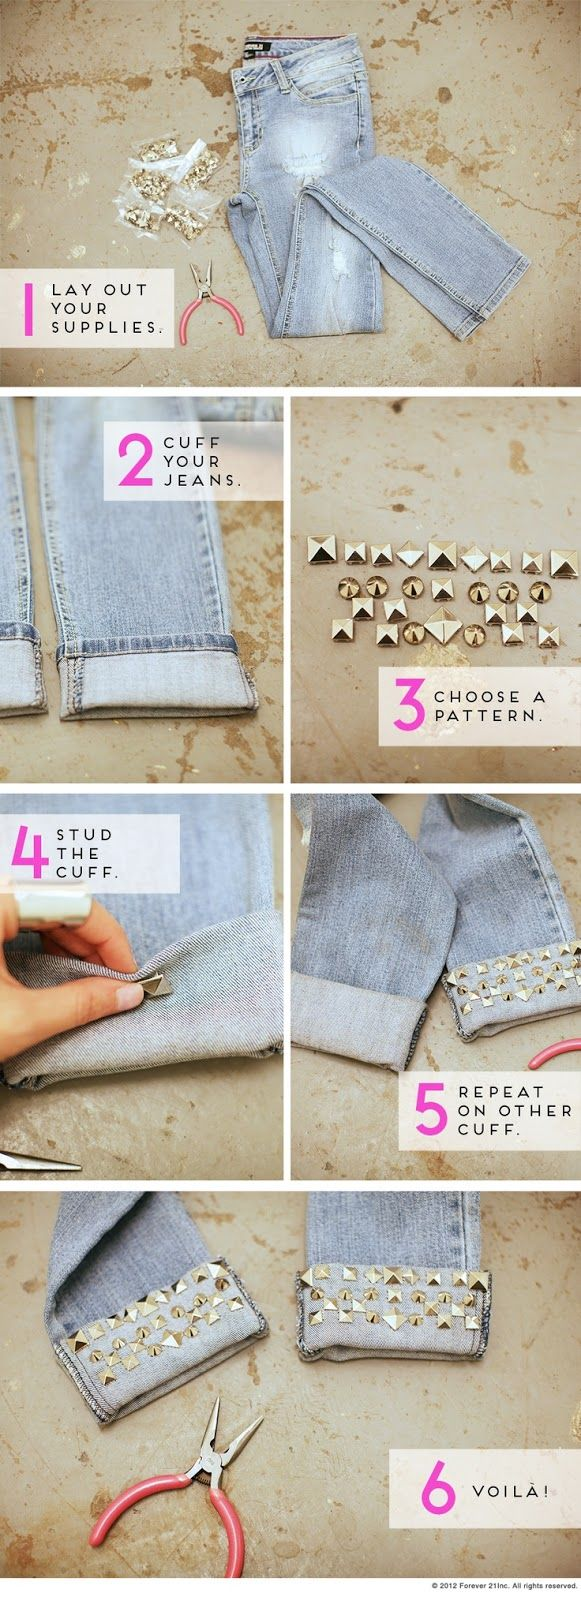 Design your jeans with studs:-  For designing jeans with studs we need